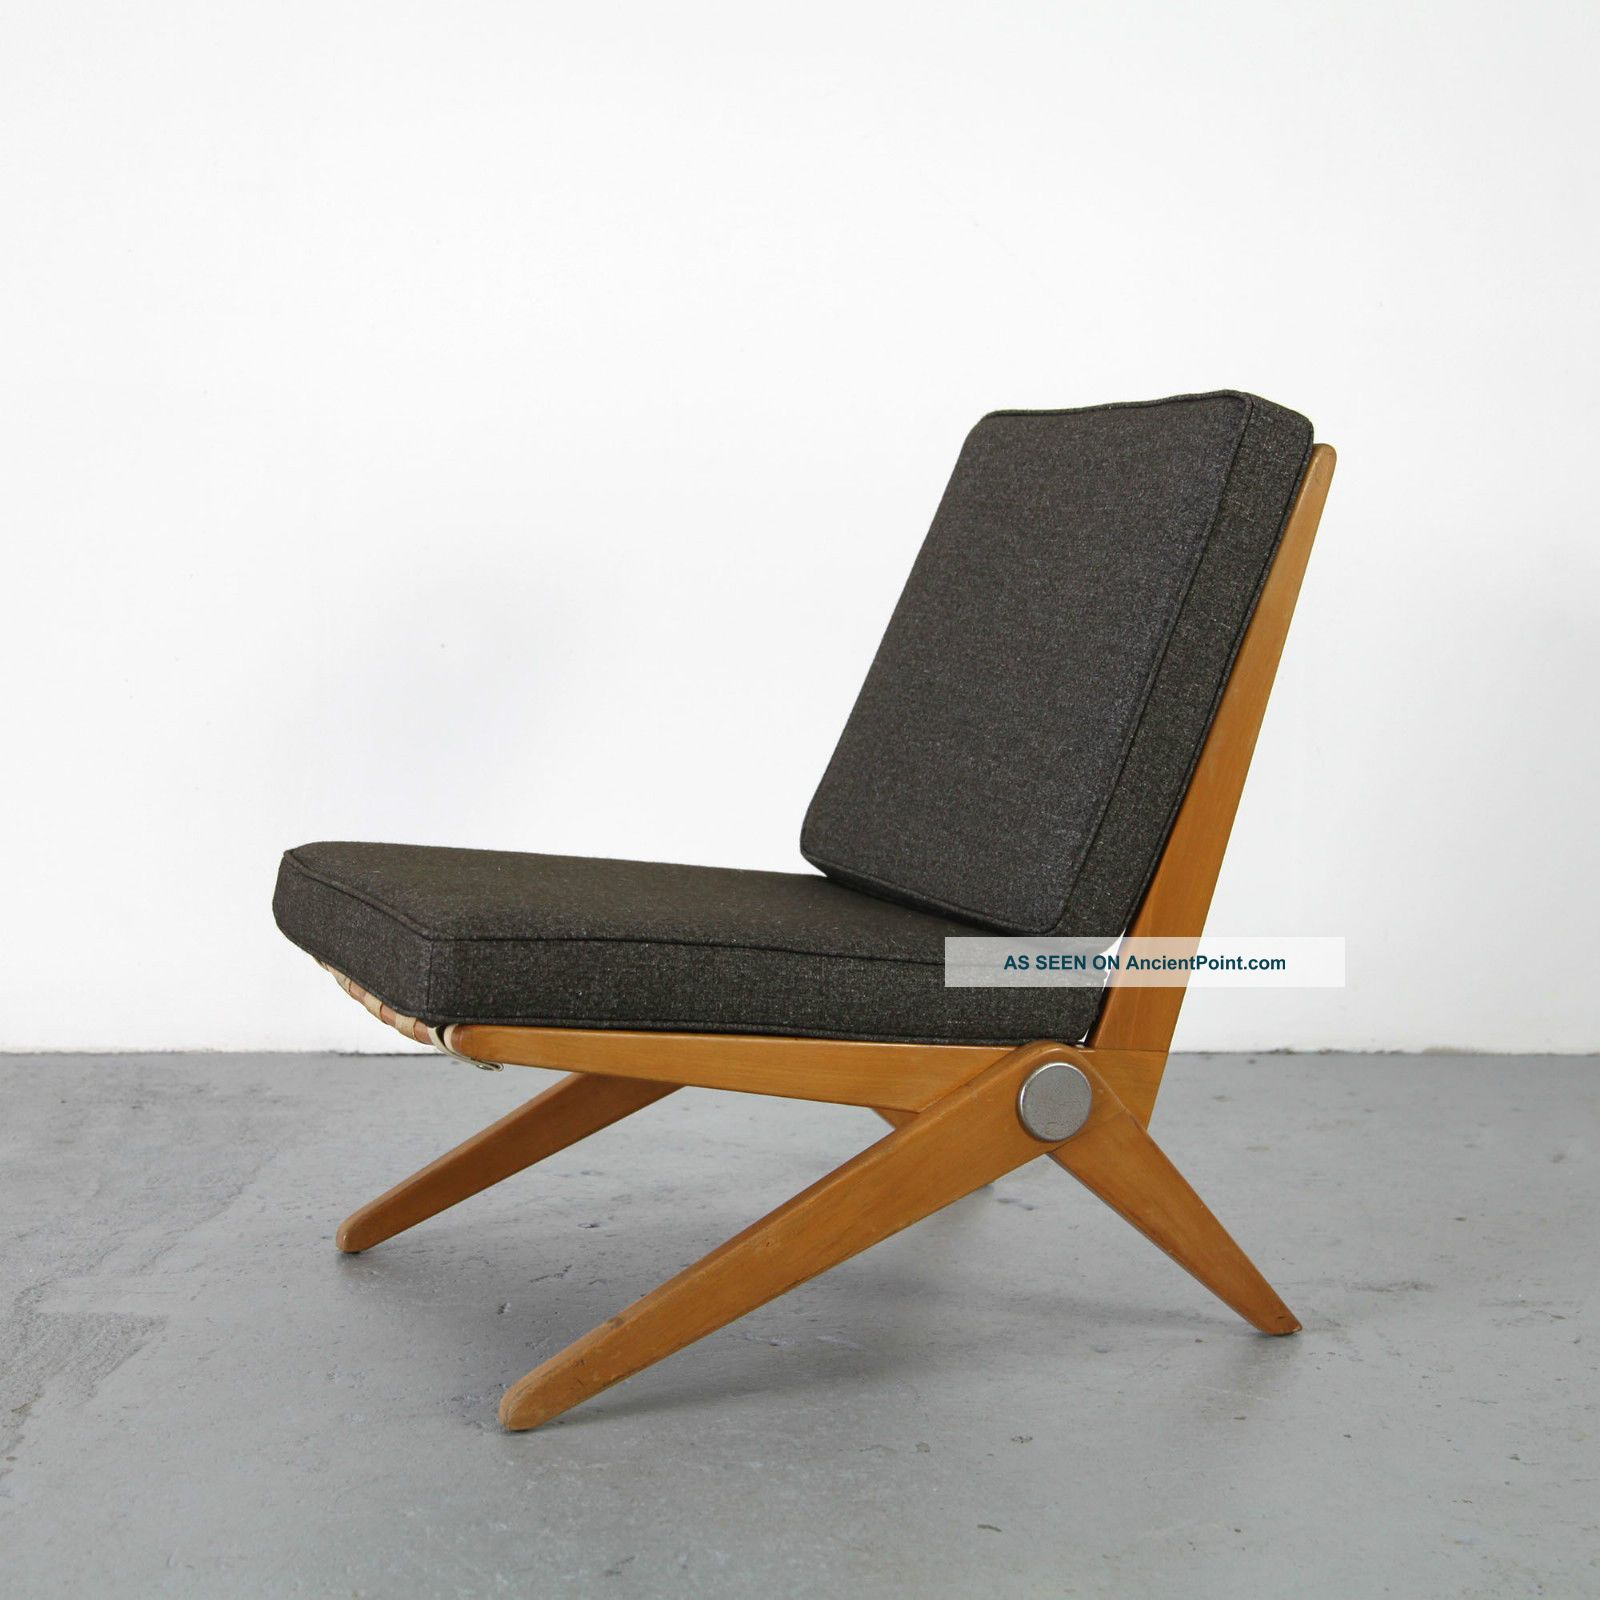 Knoll International Sessel Scissor Chair By Pierre Jeanneret Knoll International 50s Mid